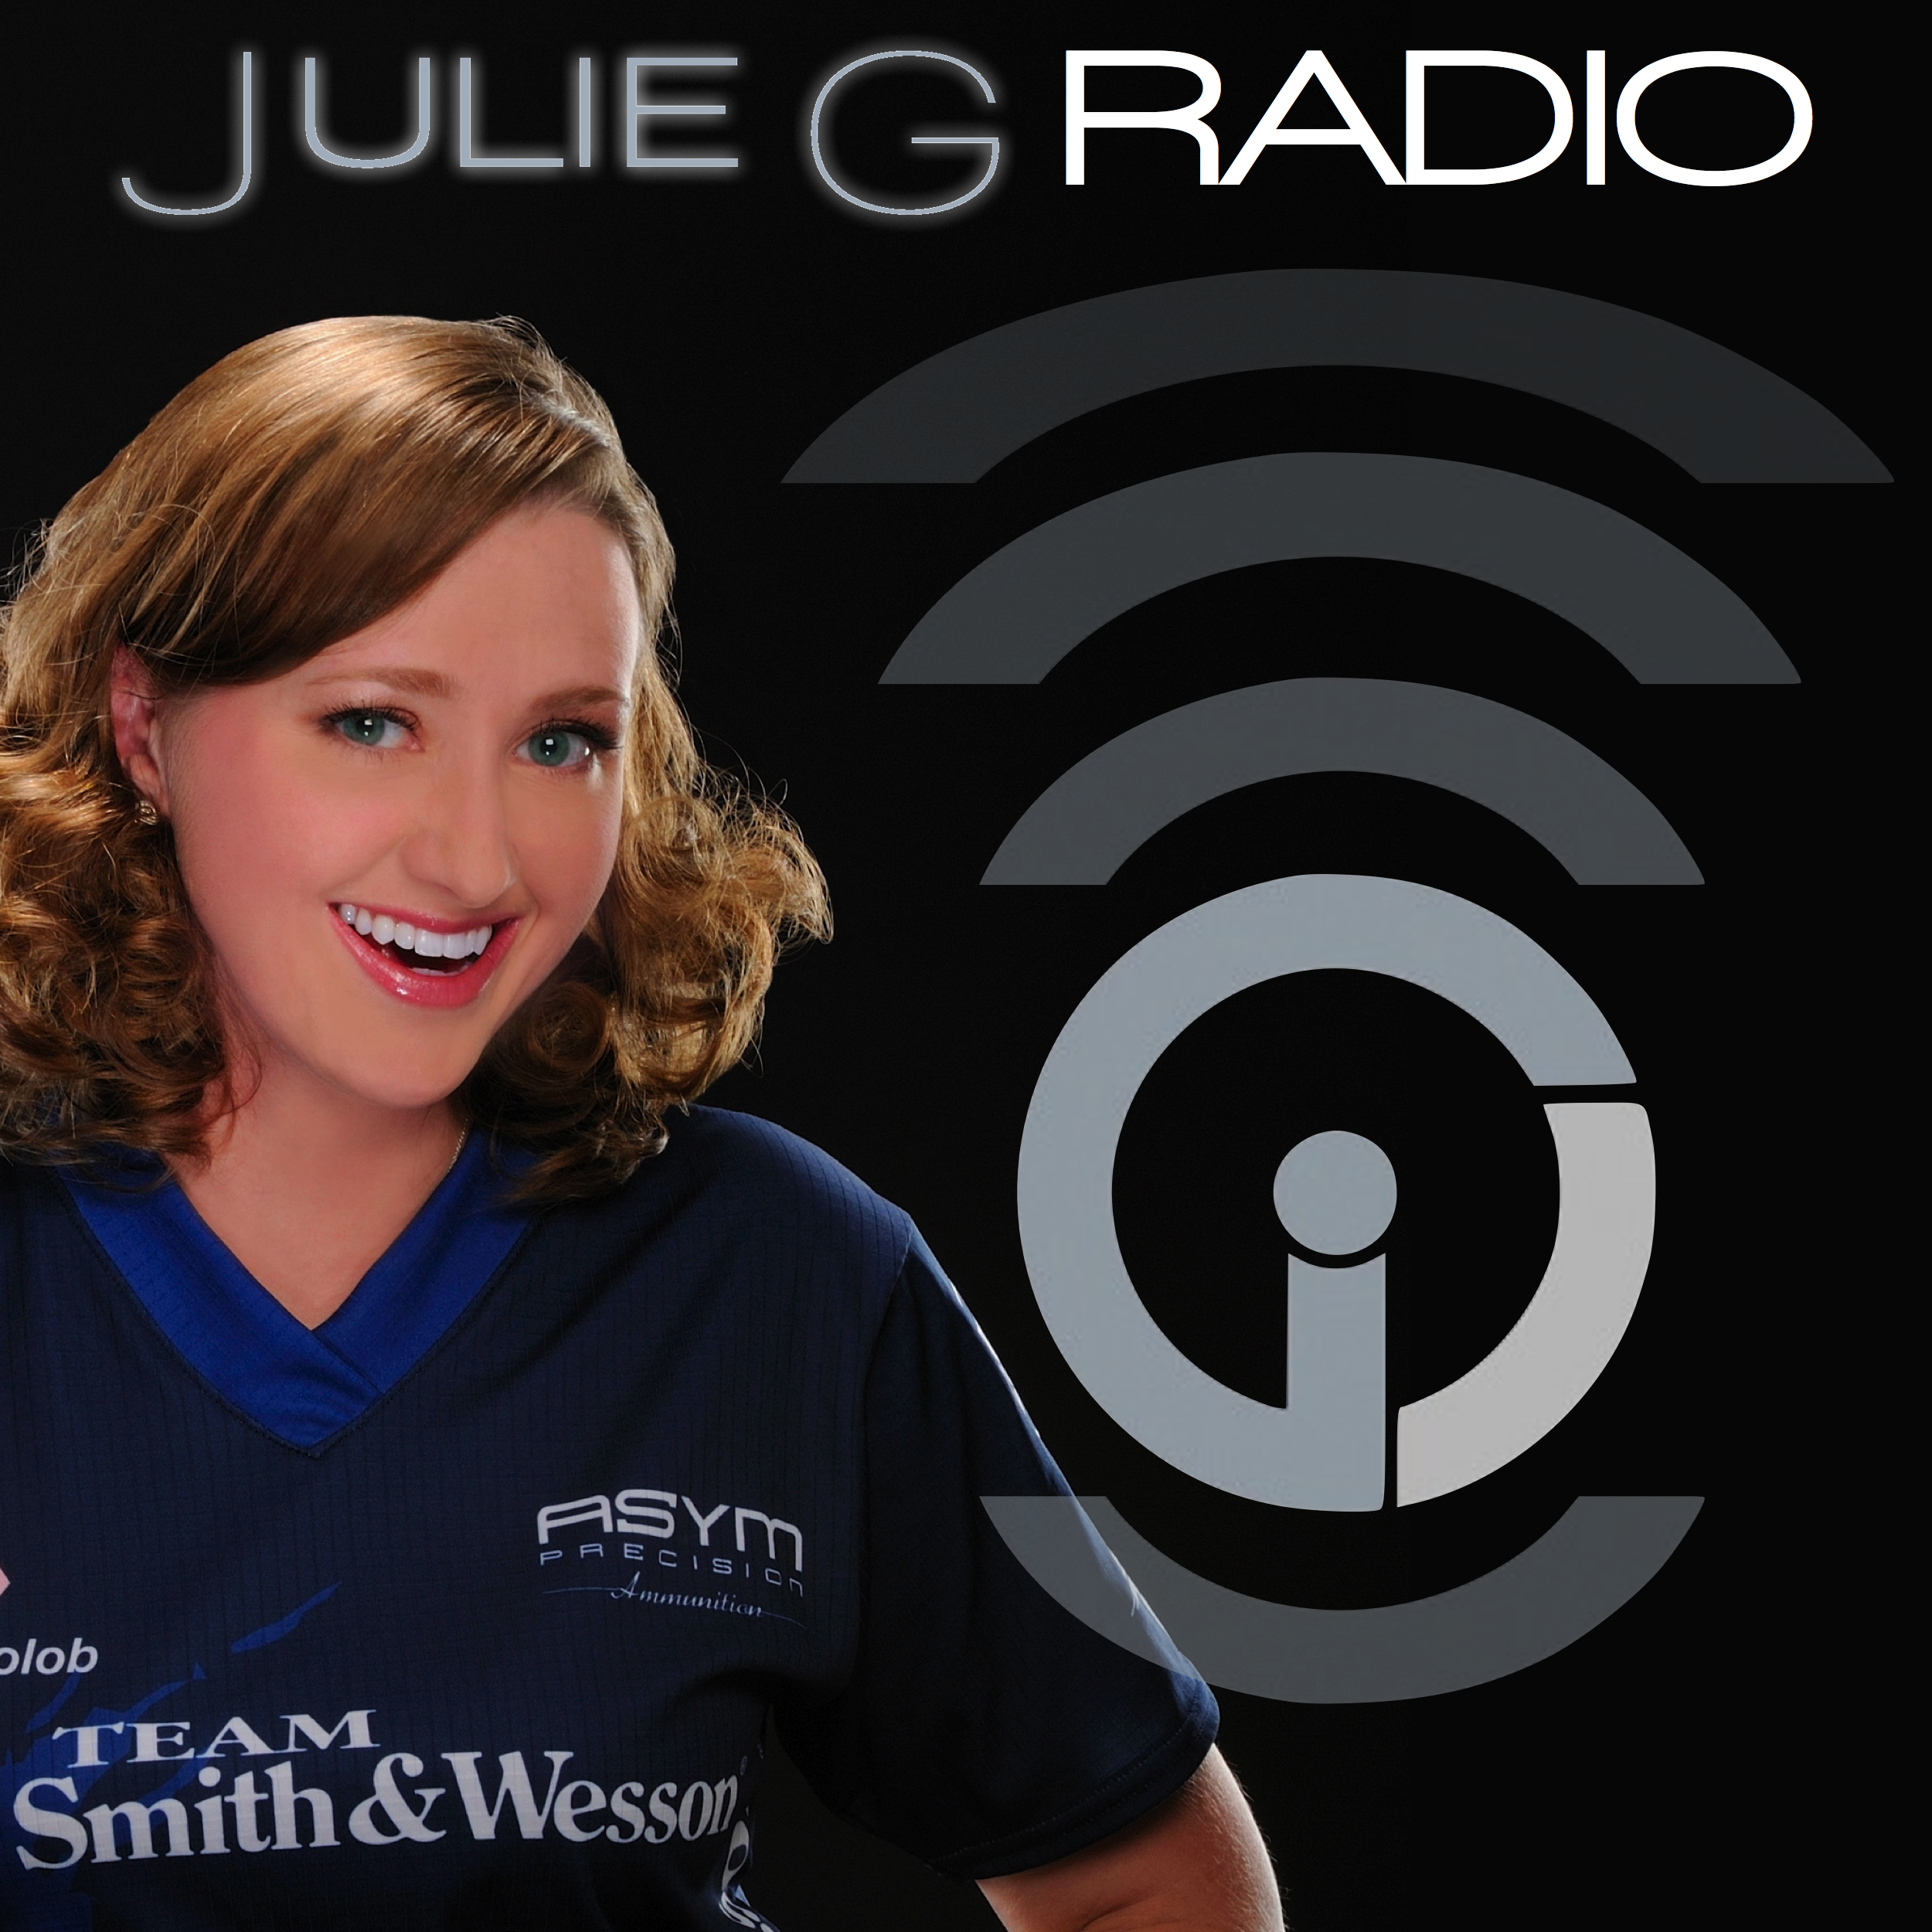 JulieG Radio